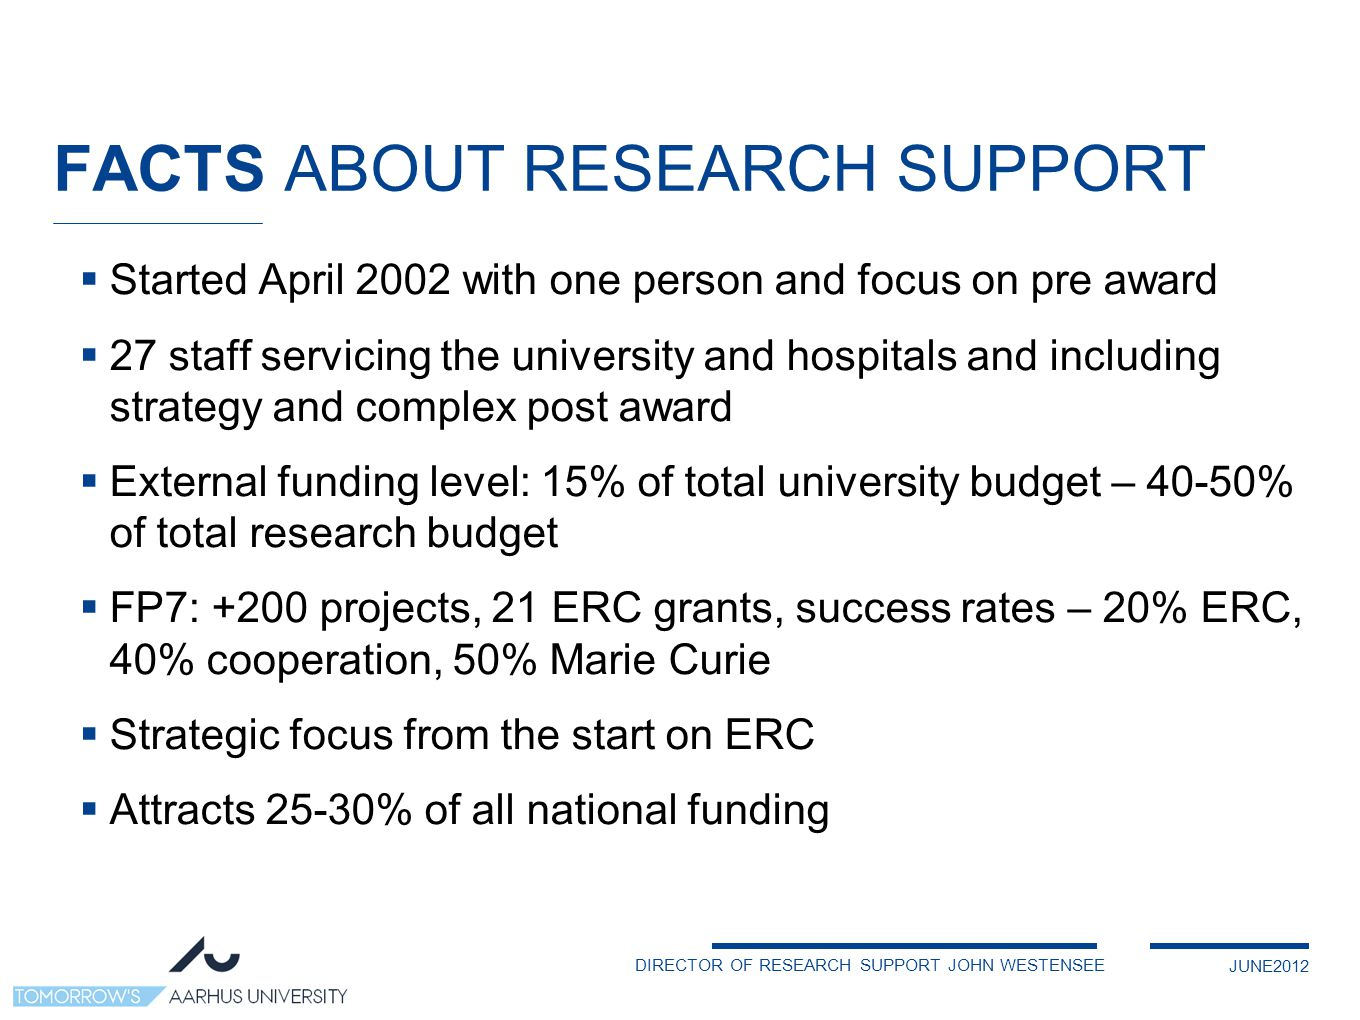 DIRECTOR OF RESEARCH SUPPORT JOHN WESTENSEE JUNE2012 FACTS ABOUT RESEARCH SUPPORT  Started April 2002 with one person and focus on pre award  27 staff servicing the university and hospitals and including strategy and complex post award  External funding level: 15% of total university budget – 40-50% of total research budget  FP7: +200 projects, 21 ERC grants, success rates – 20% ERC, 40% cooperation, 50% Marie Curie  Strategic focus from the start on ERC  Attracts 25-30% of all national funding